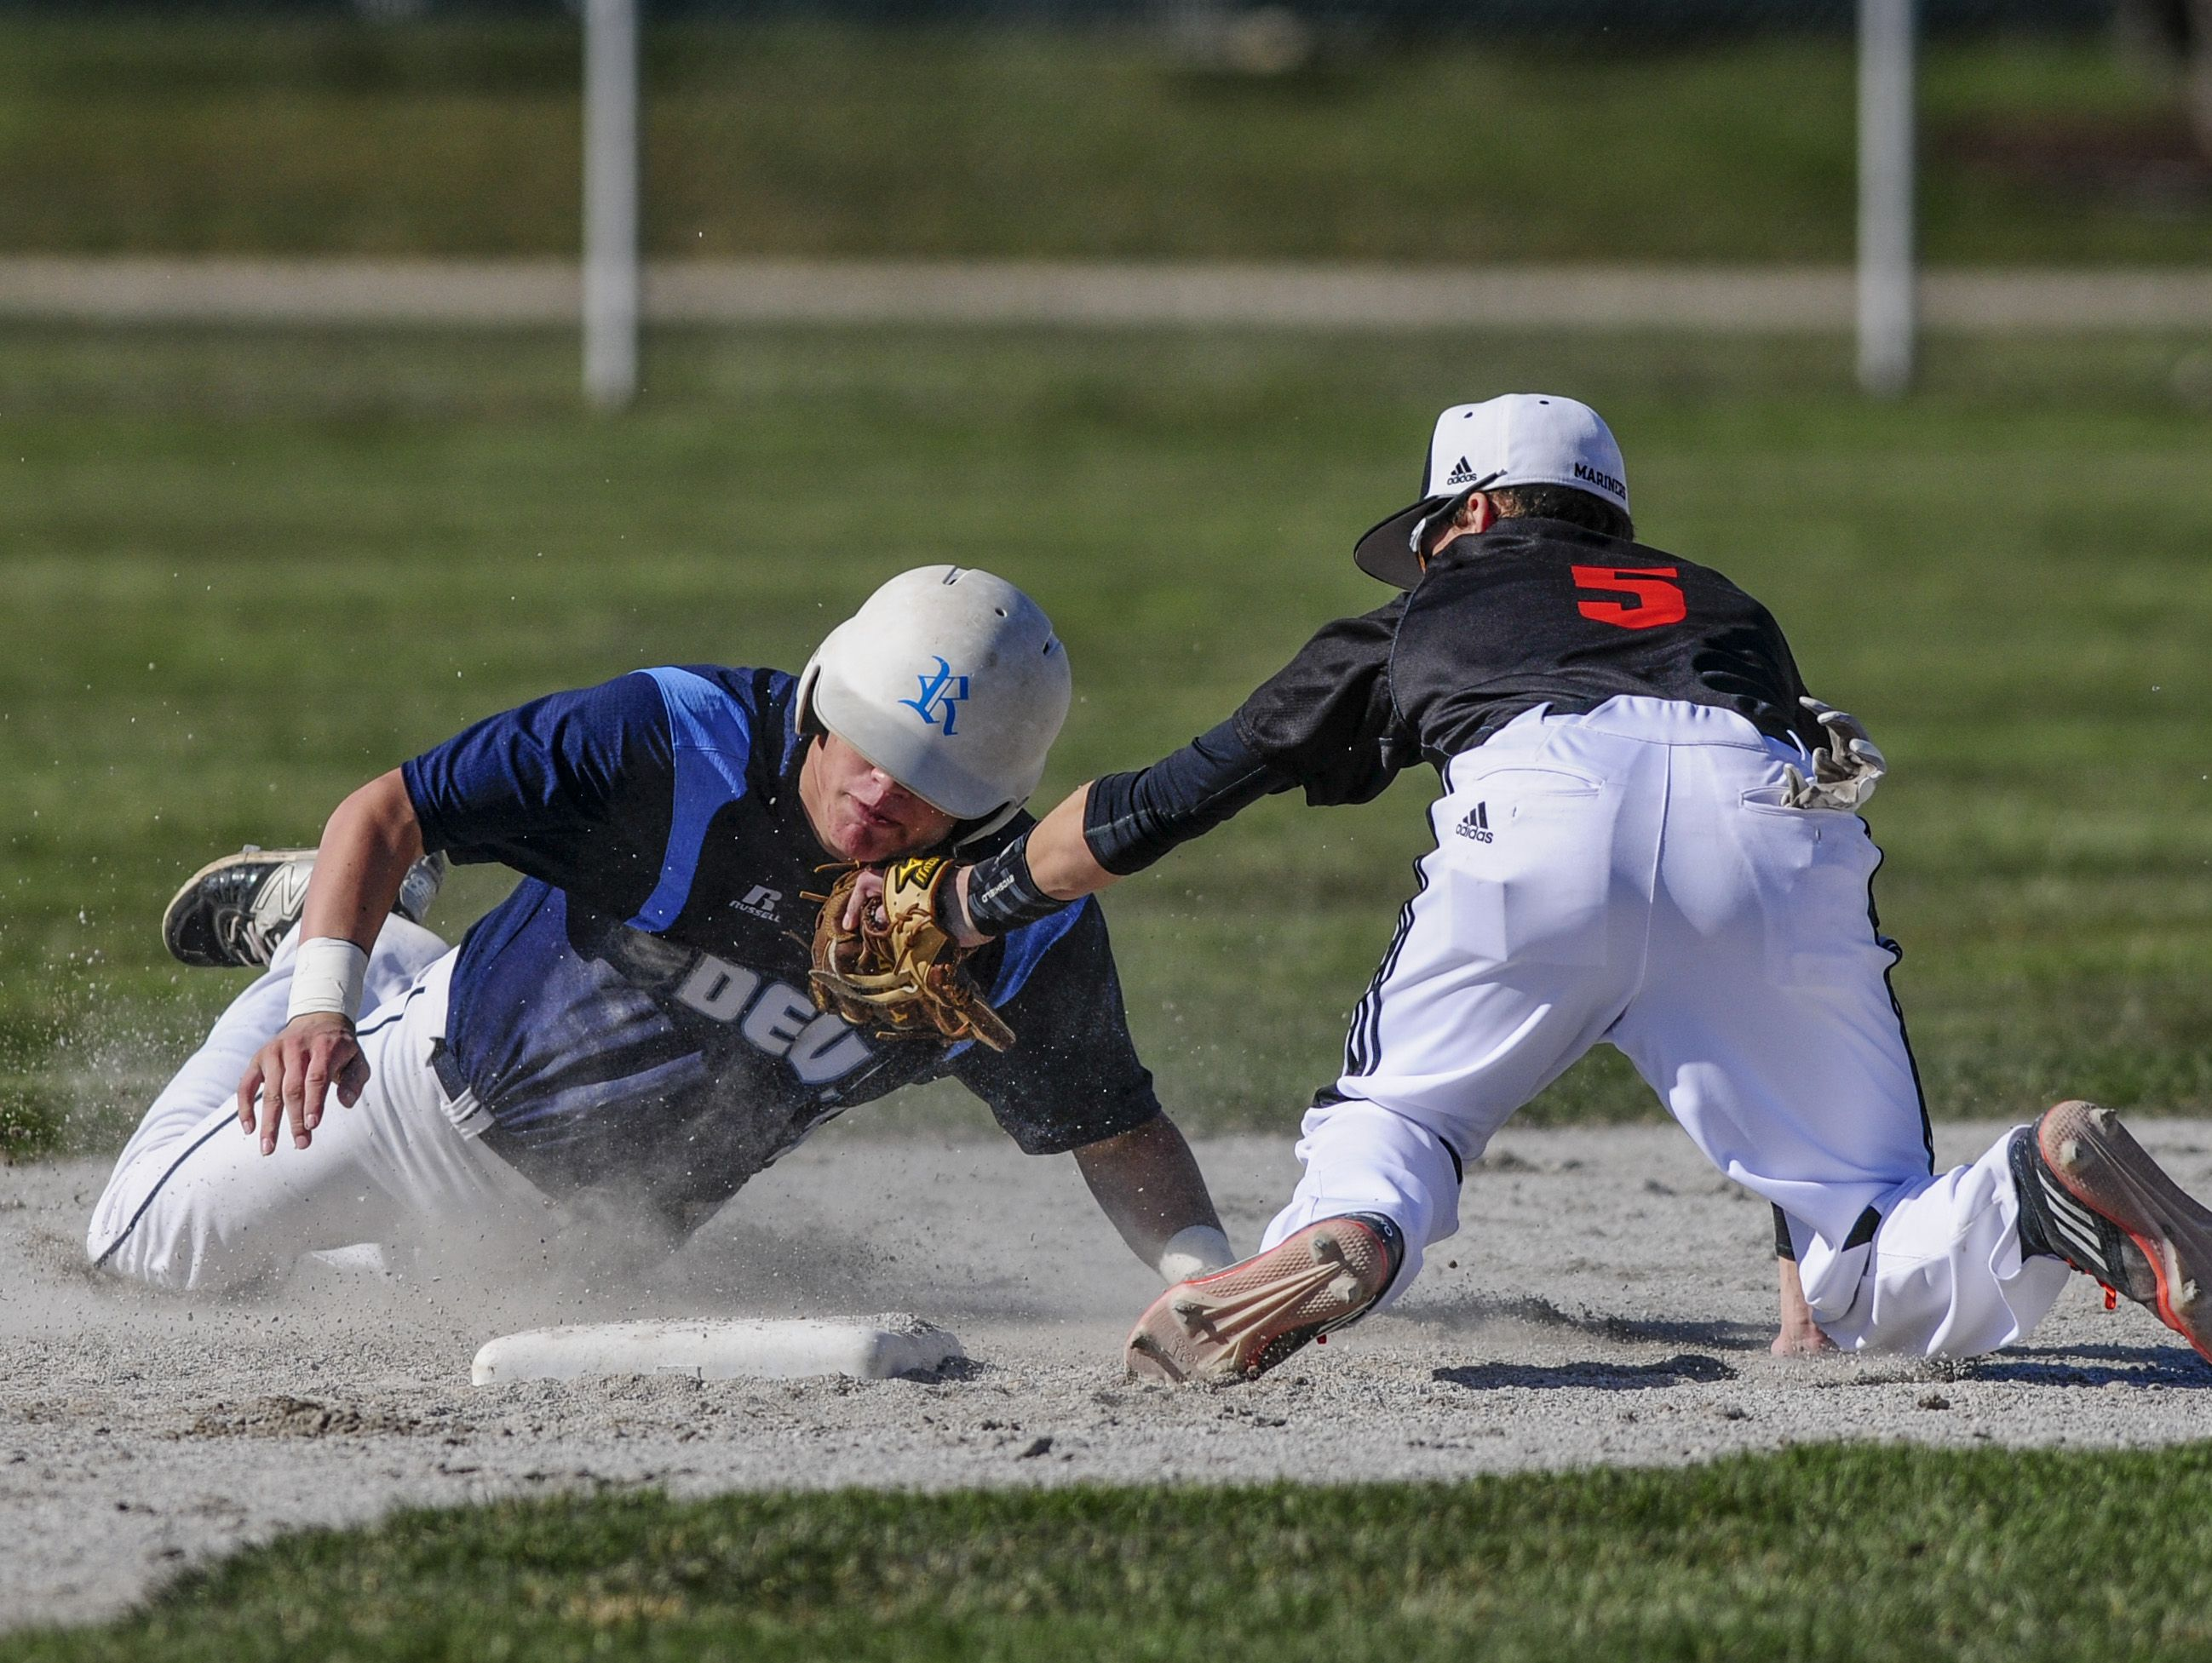 Marine City's Jake Hassein tags out Richmond's Trevor Barrett at second during a baseball game Friday, April 15, 2016 at Marine City High School.